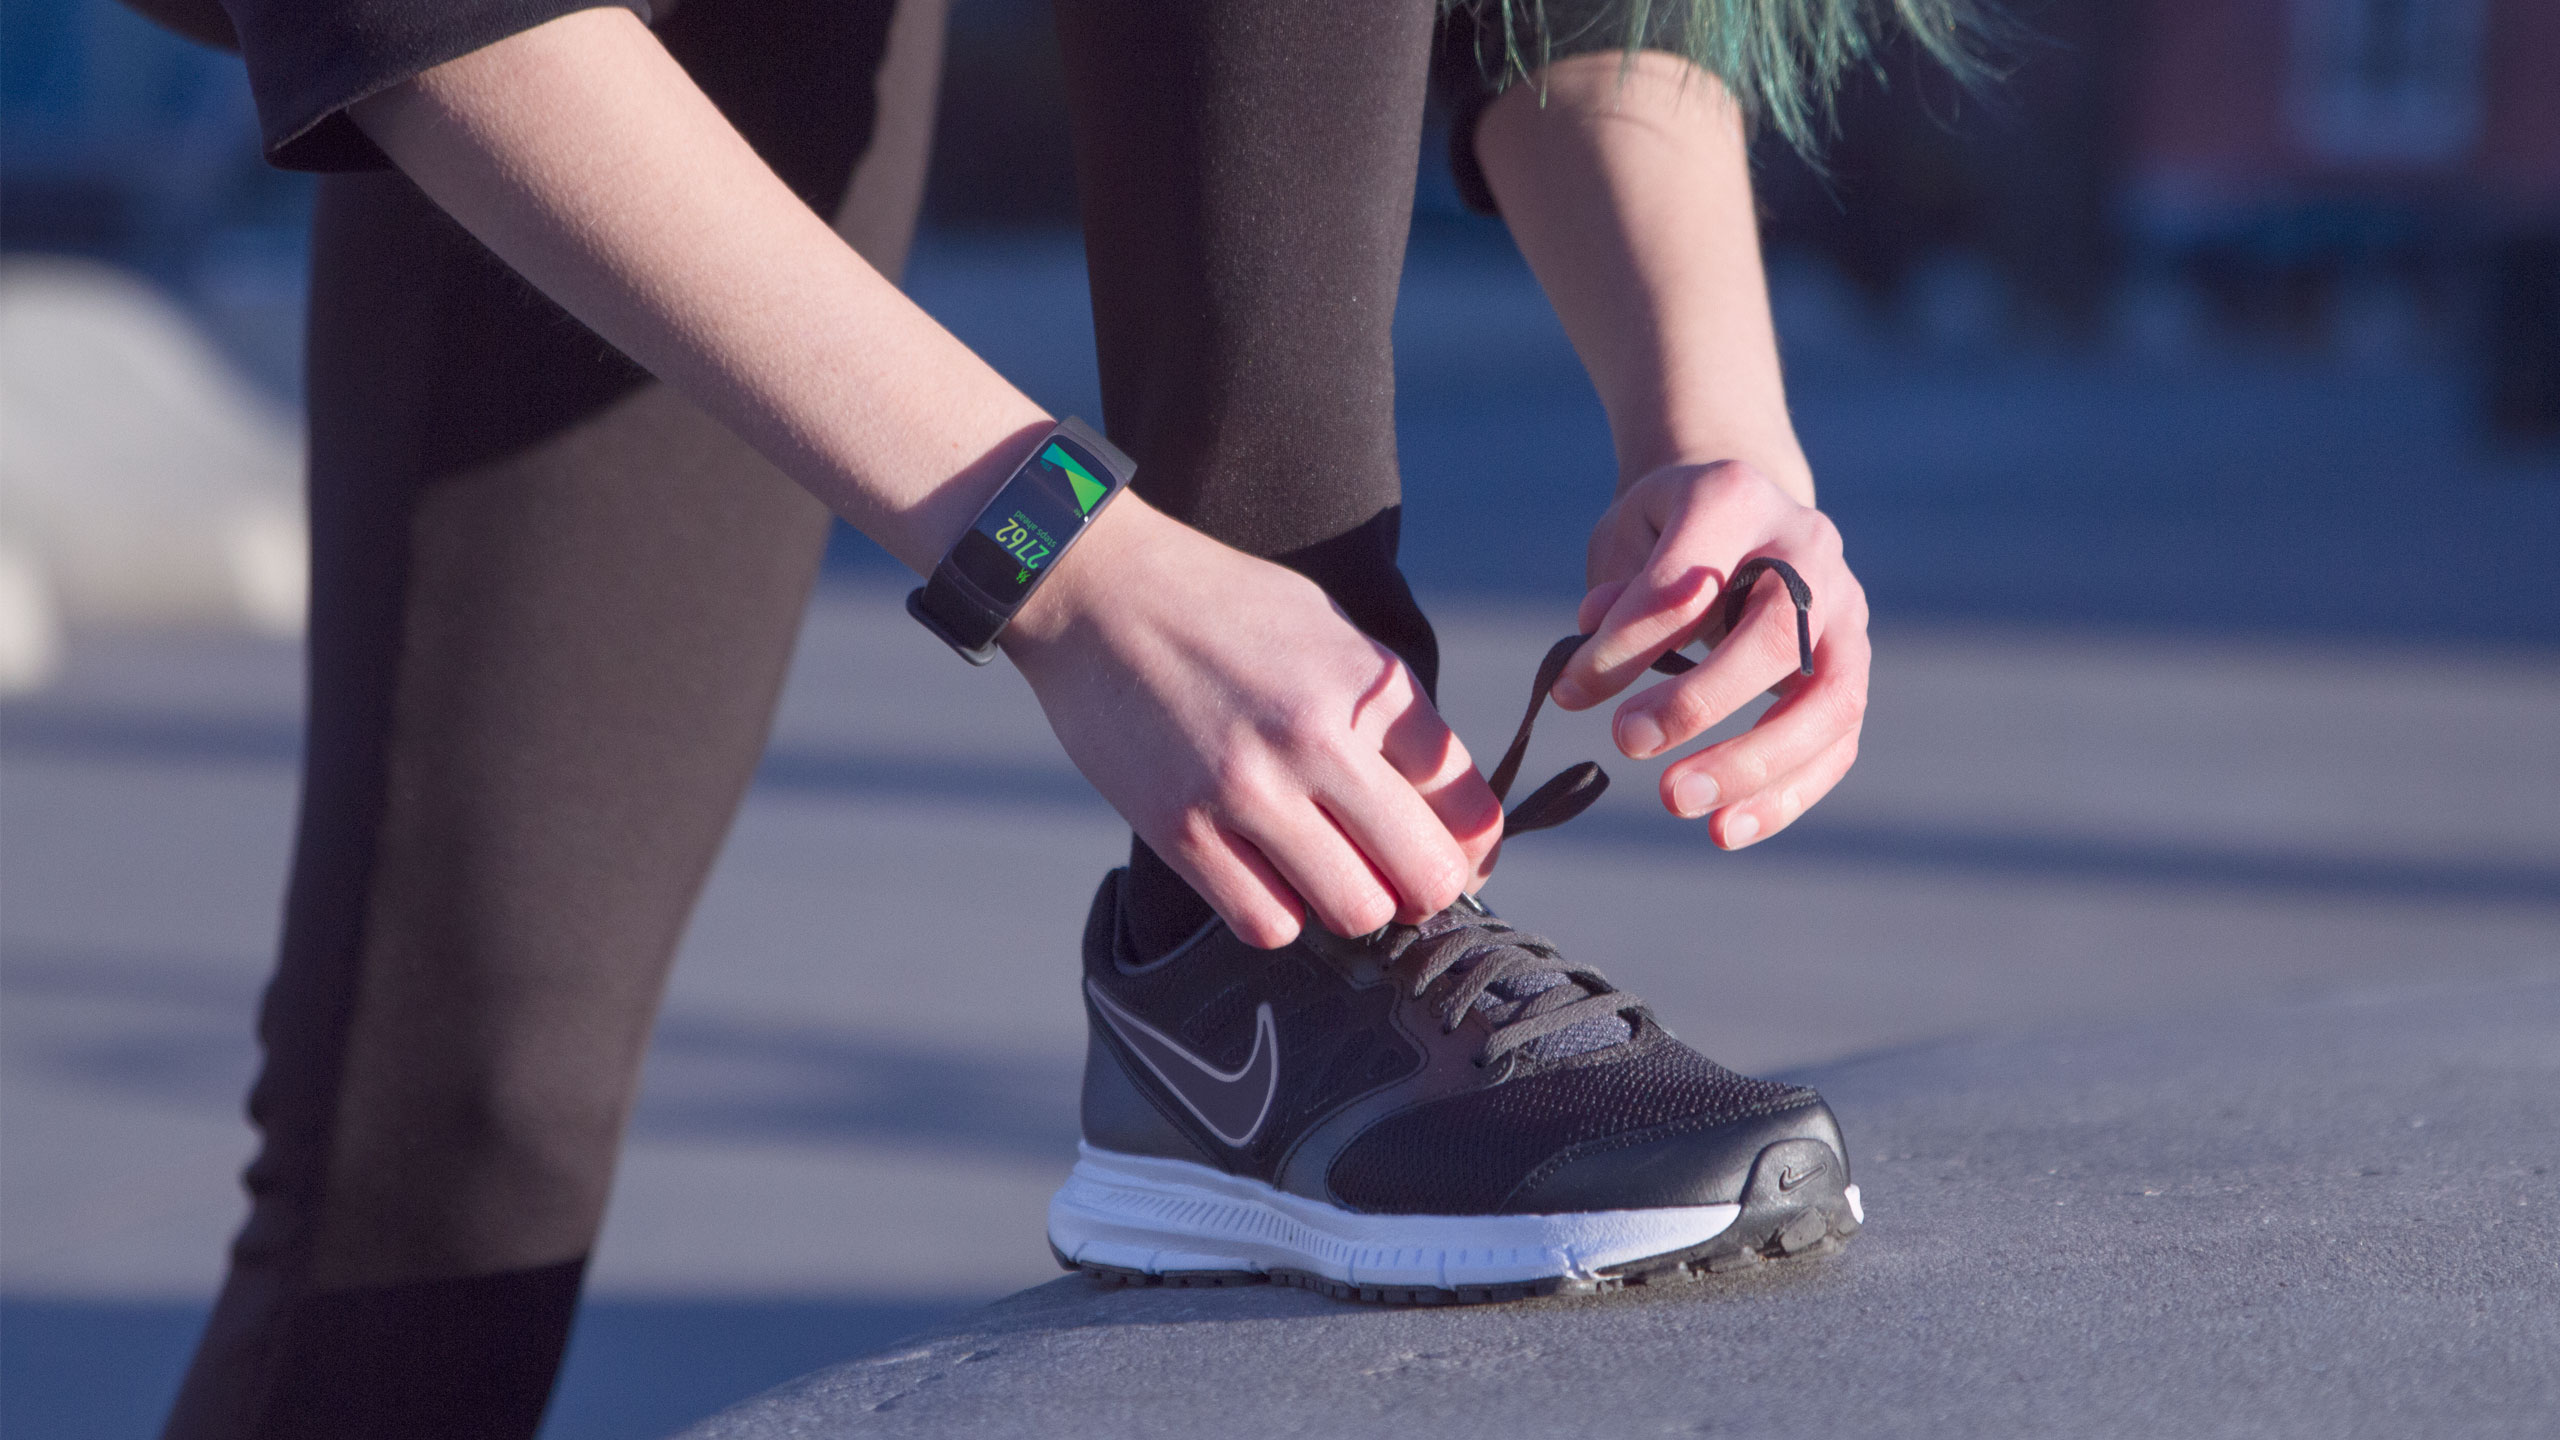 Gear Fit 2, designing for impact